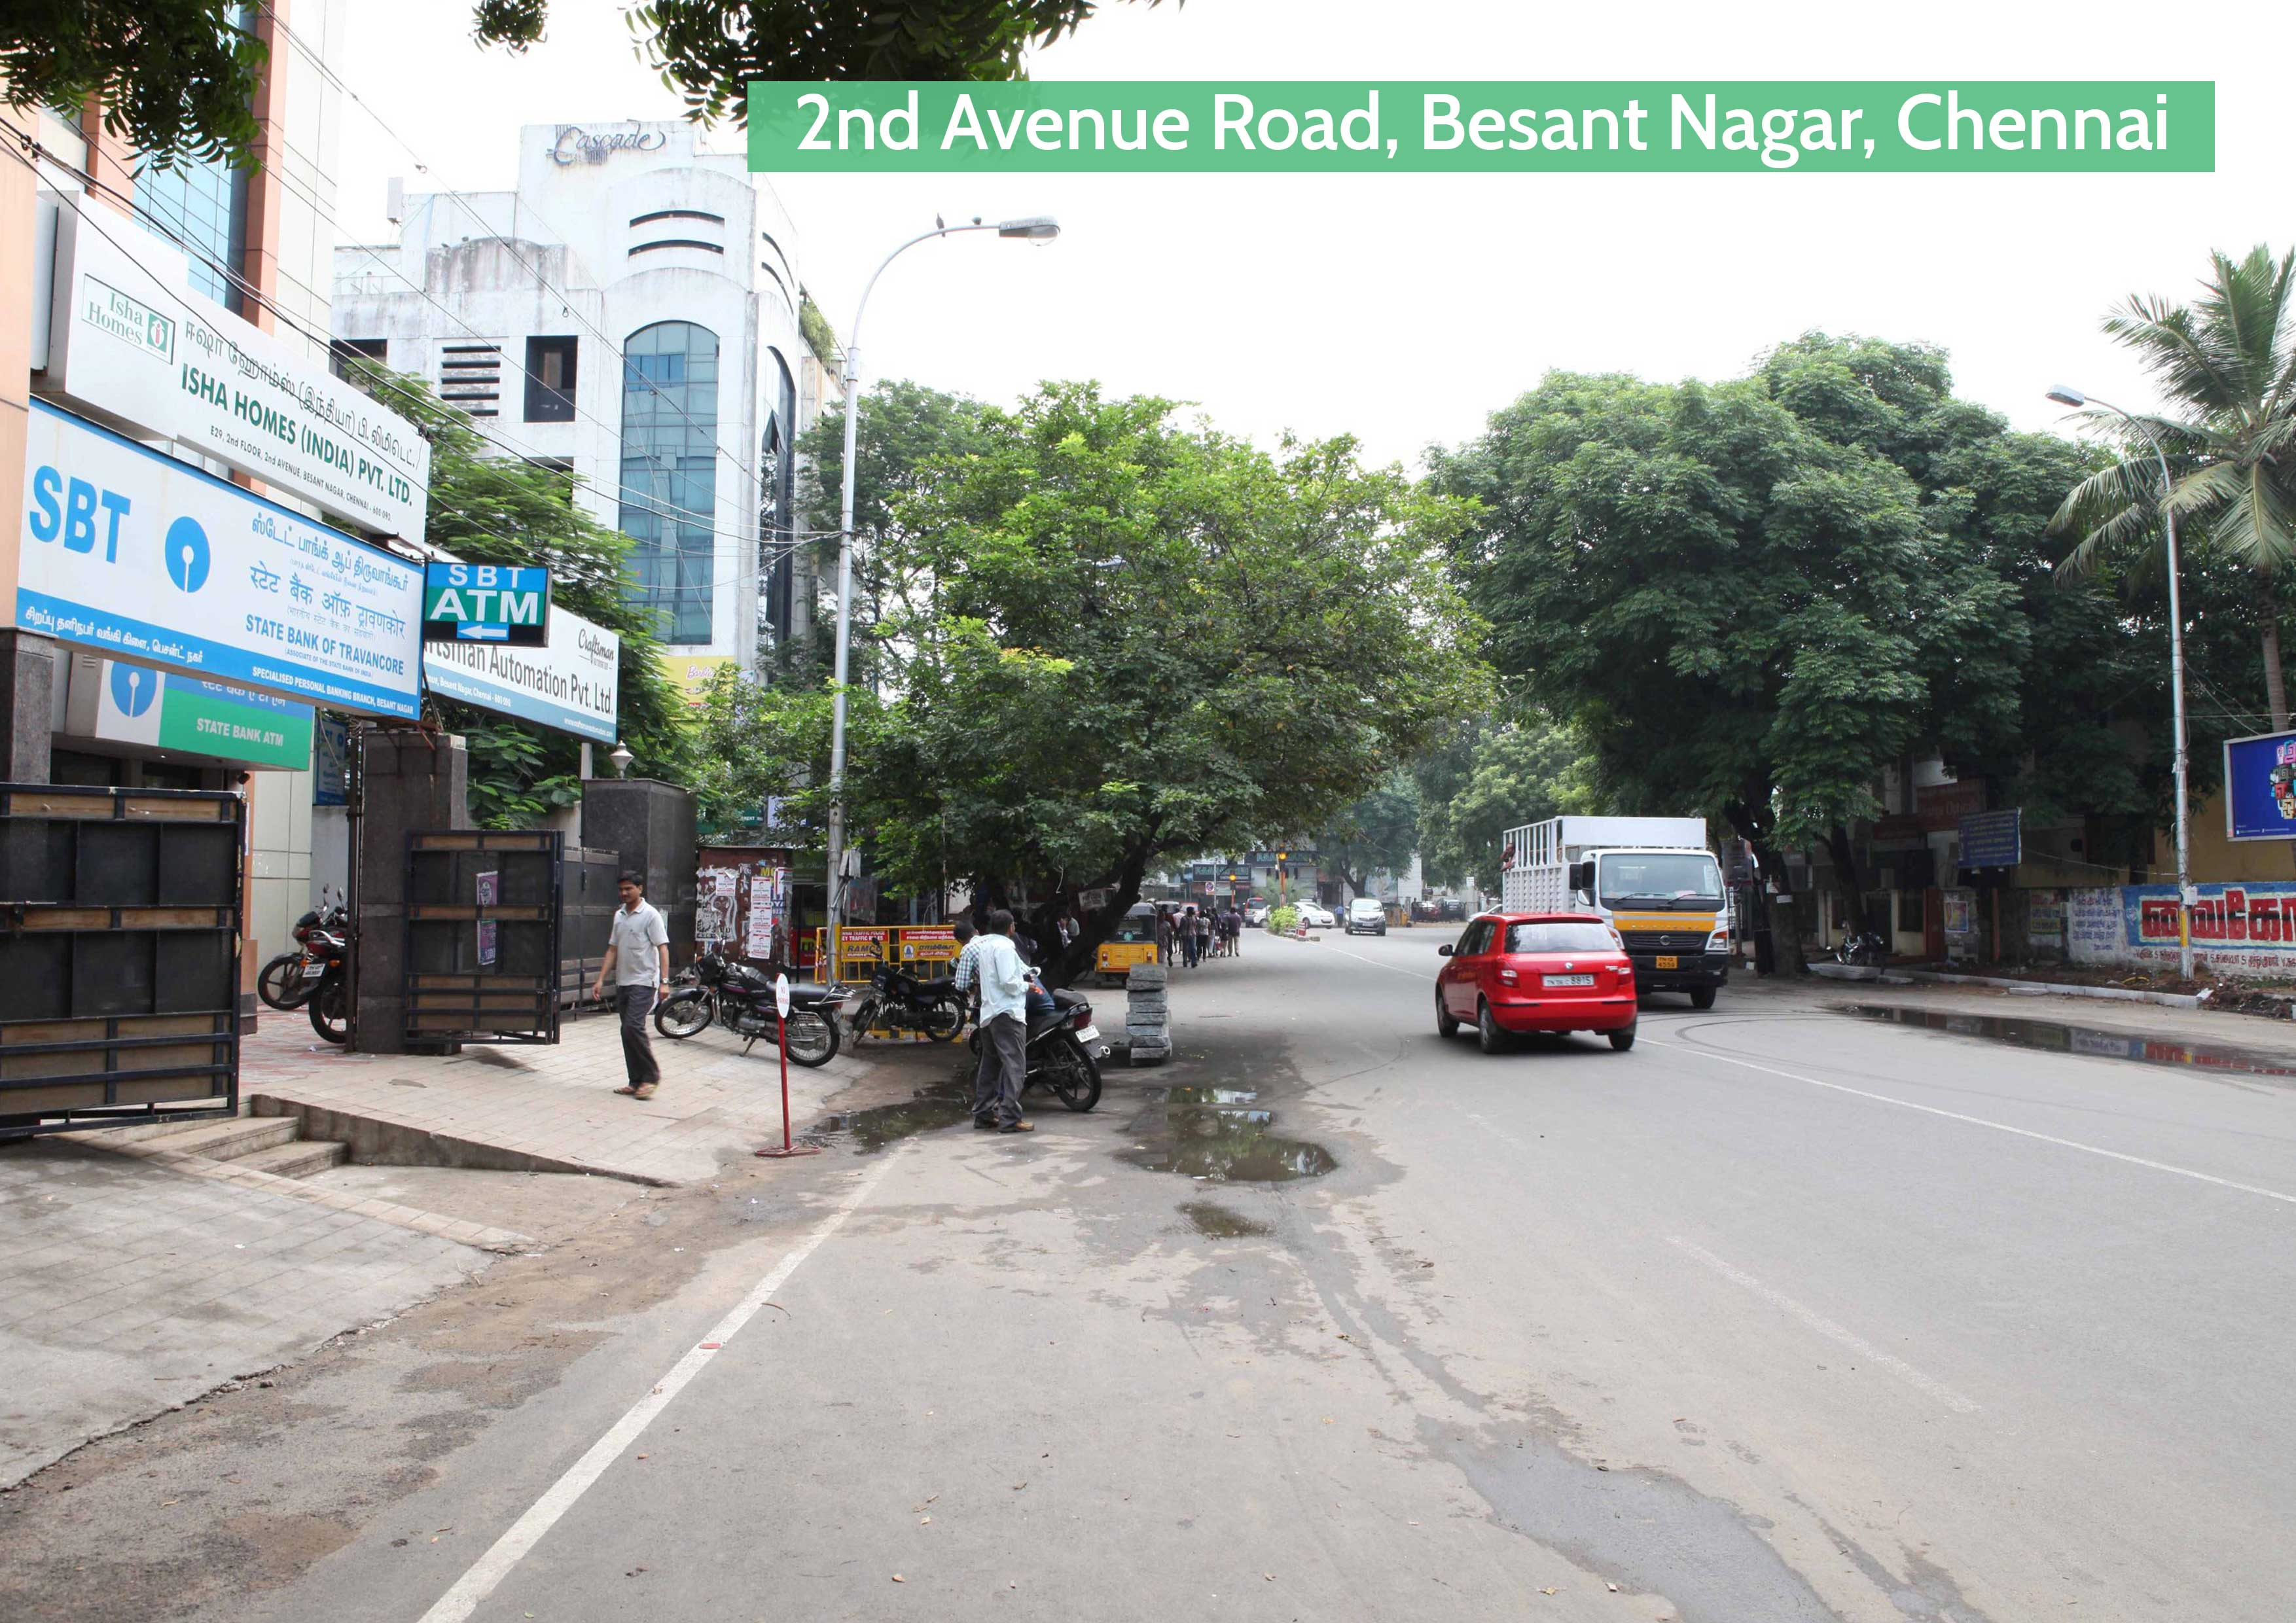 Before-Besant Nagar, Chennai